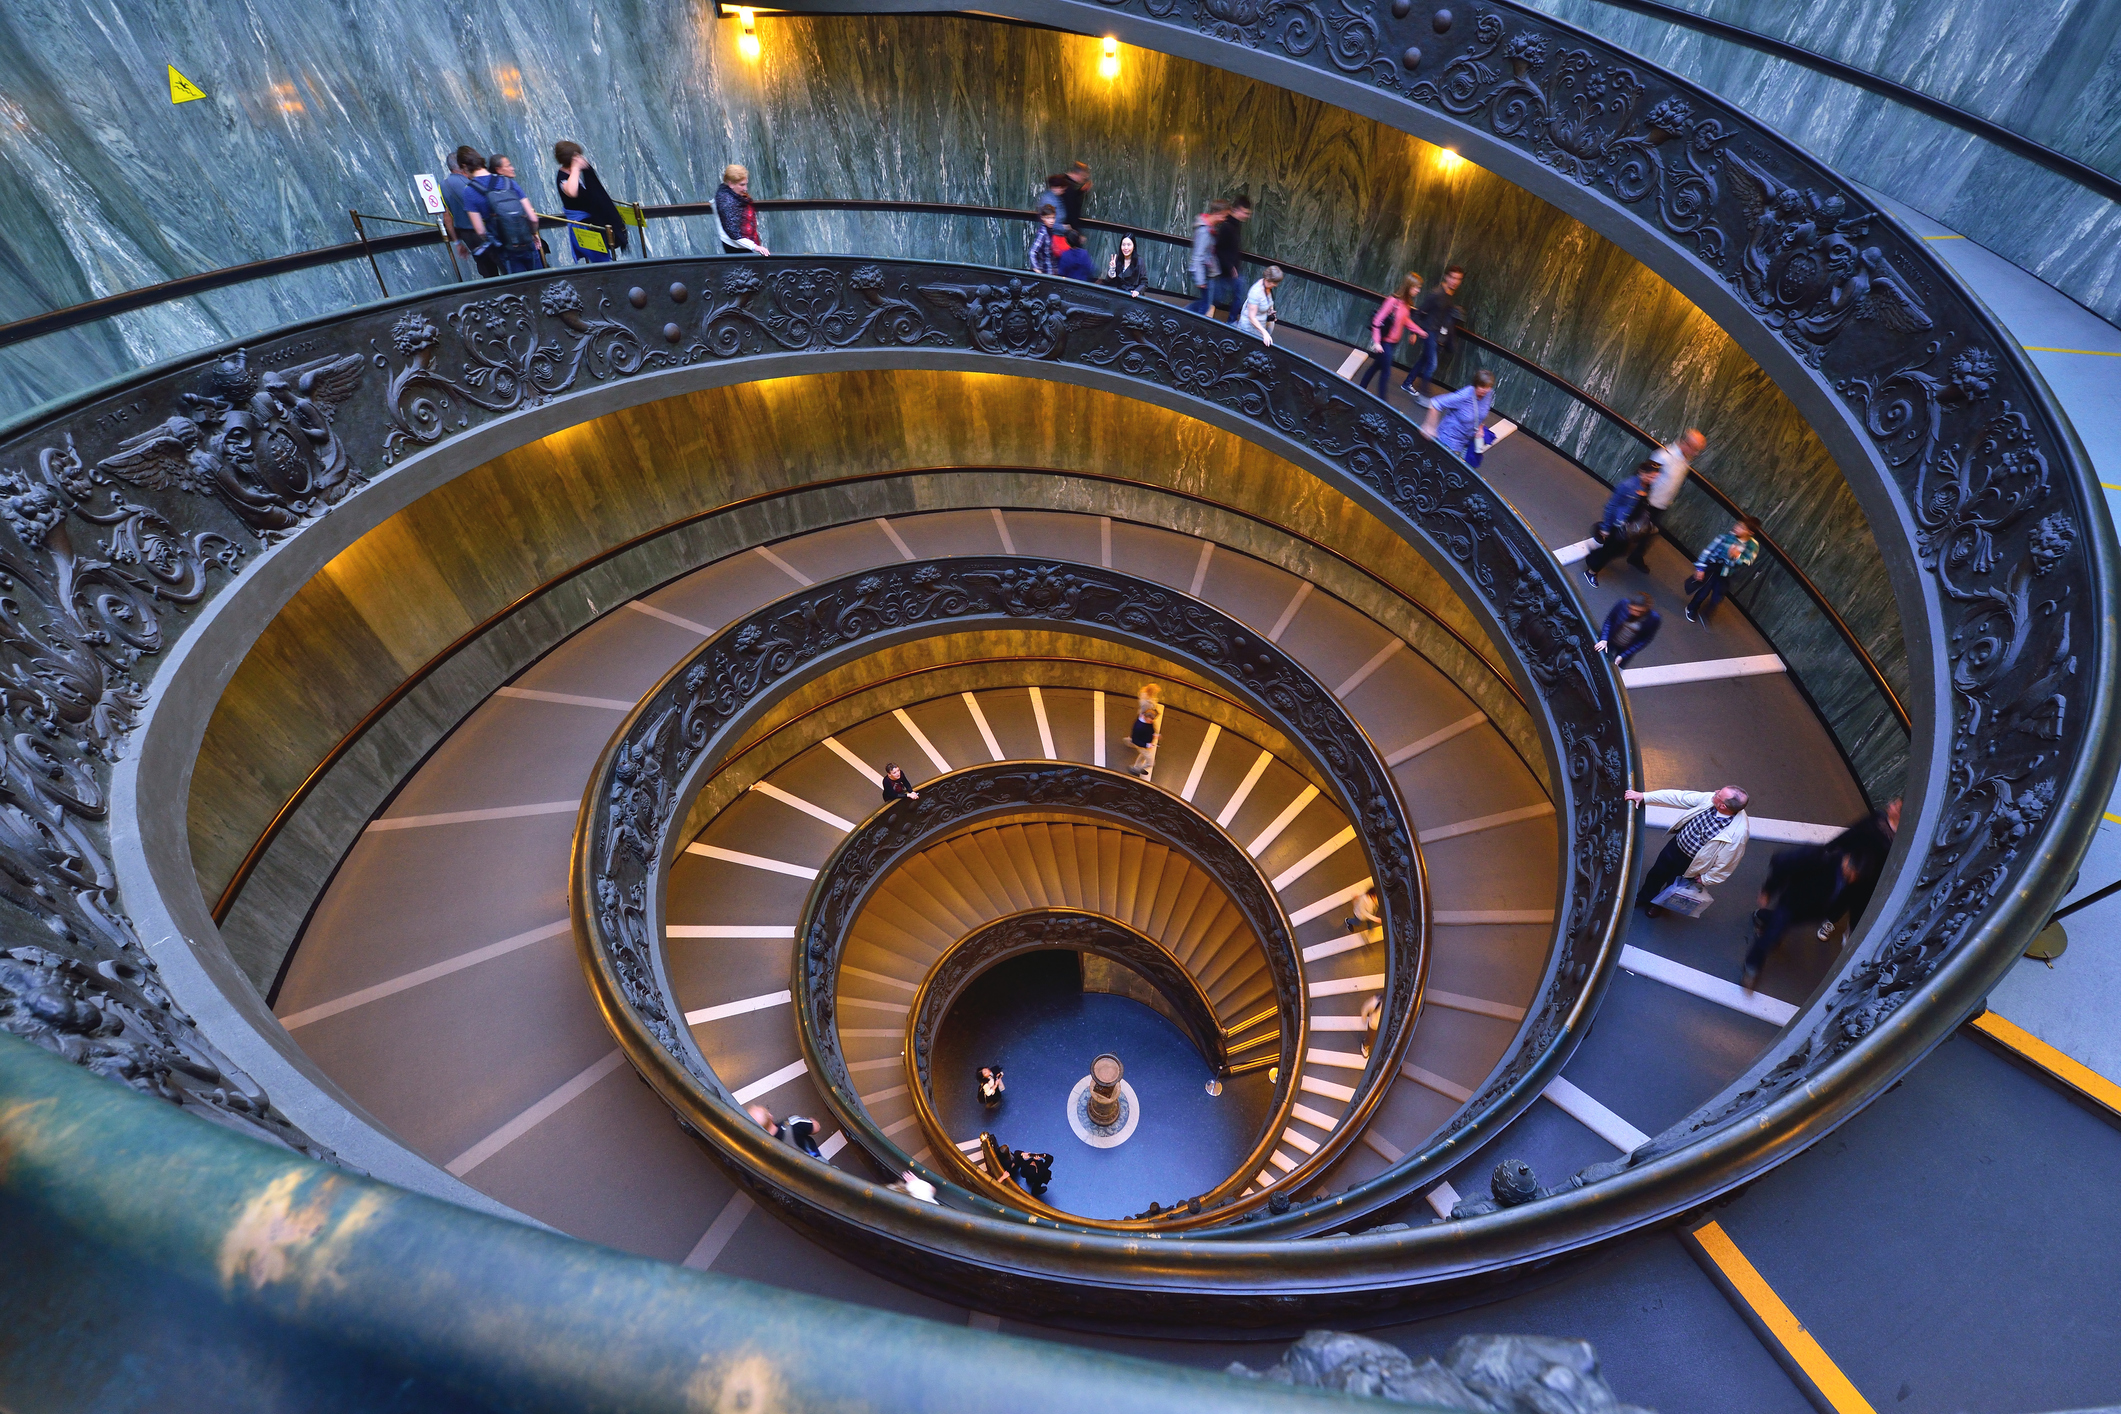 The famous and old spiral staircase. that leads to the exit of the vatican museum inside the vatican city. The Vatican Museums are among the greatest museums in the world.